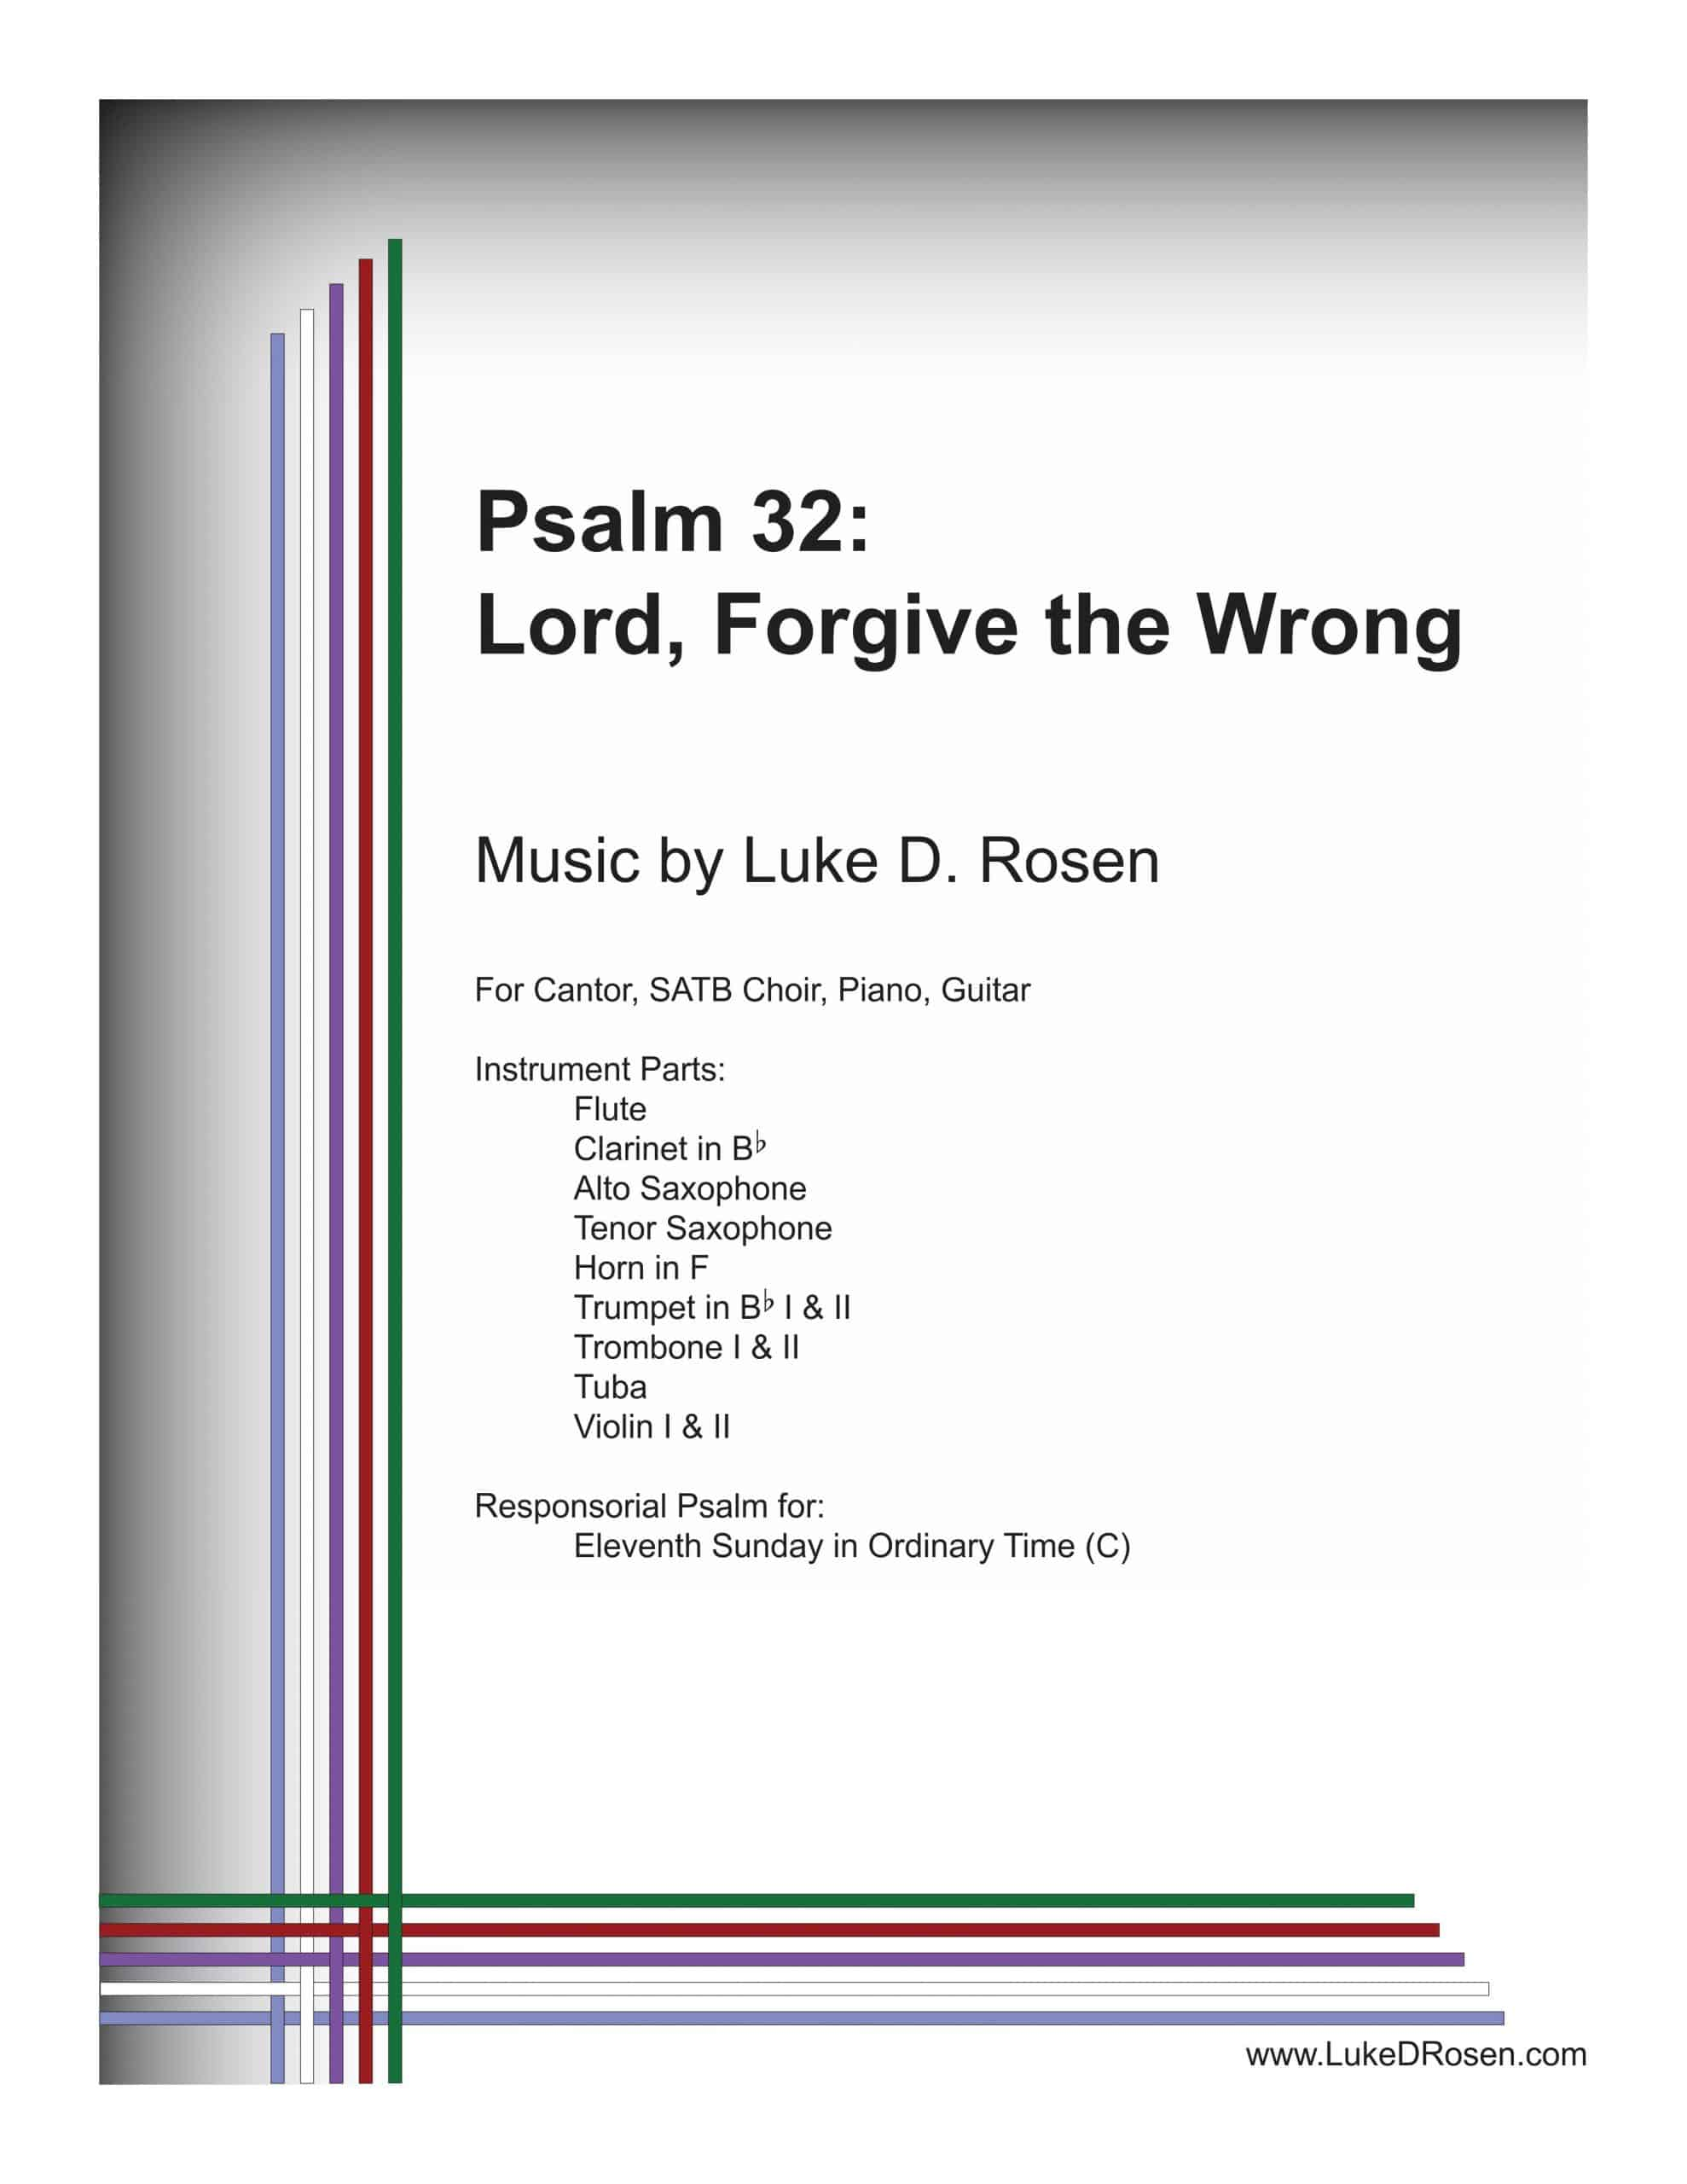 Psalm 32 Lord Forgive the Wrong ROSEN Sample Complete PDF scaled